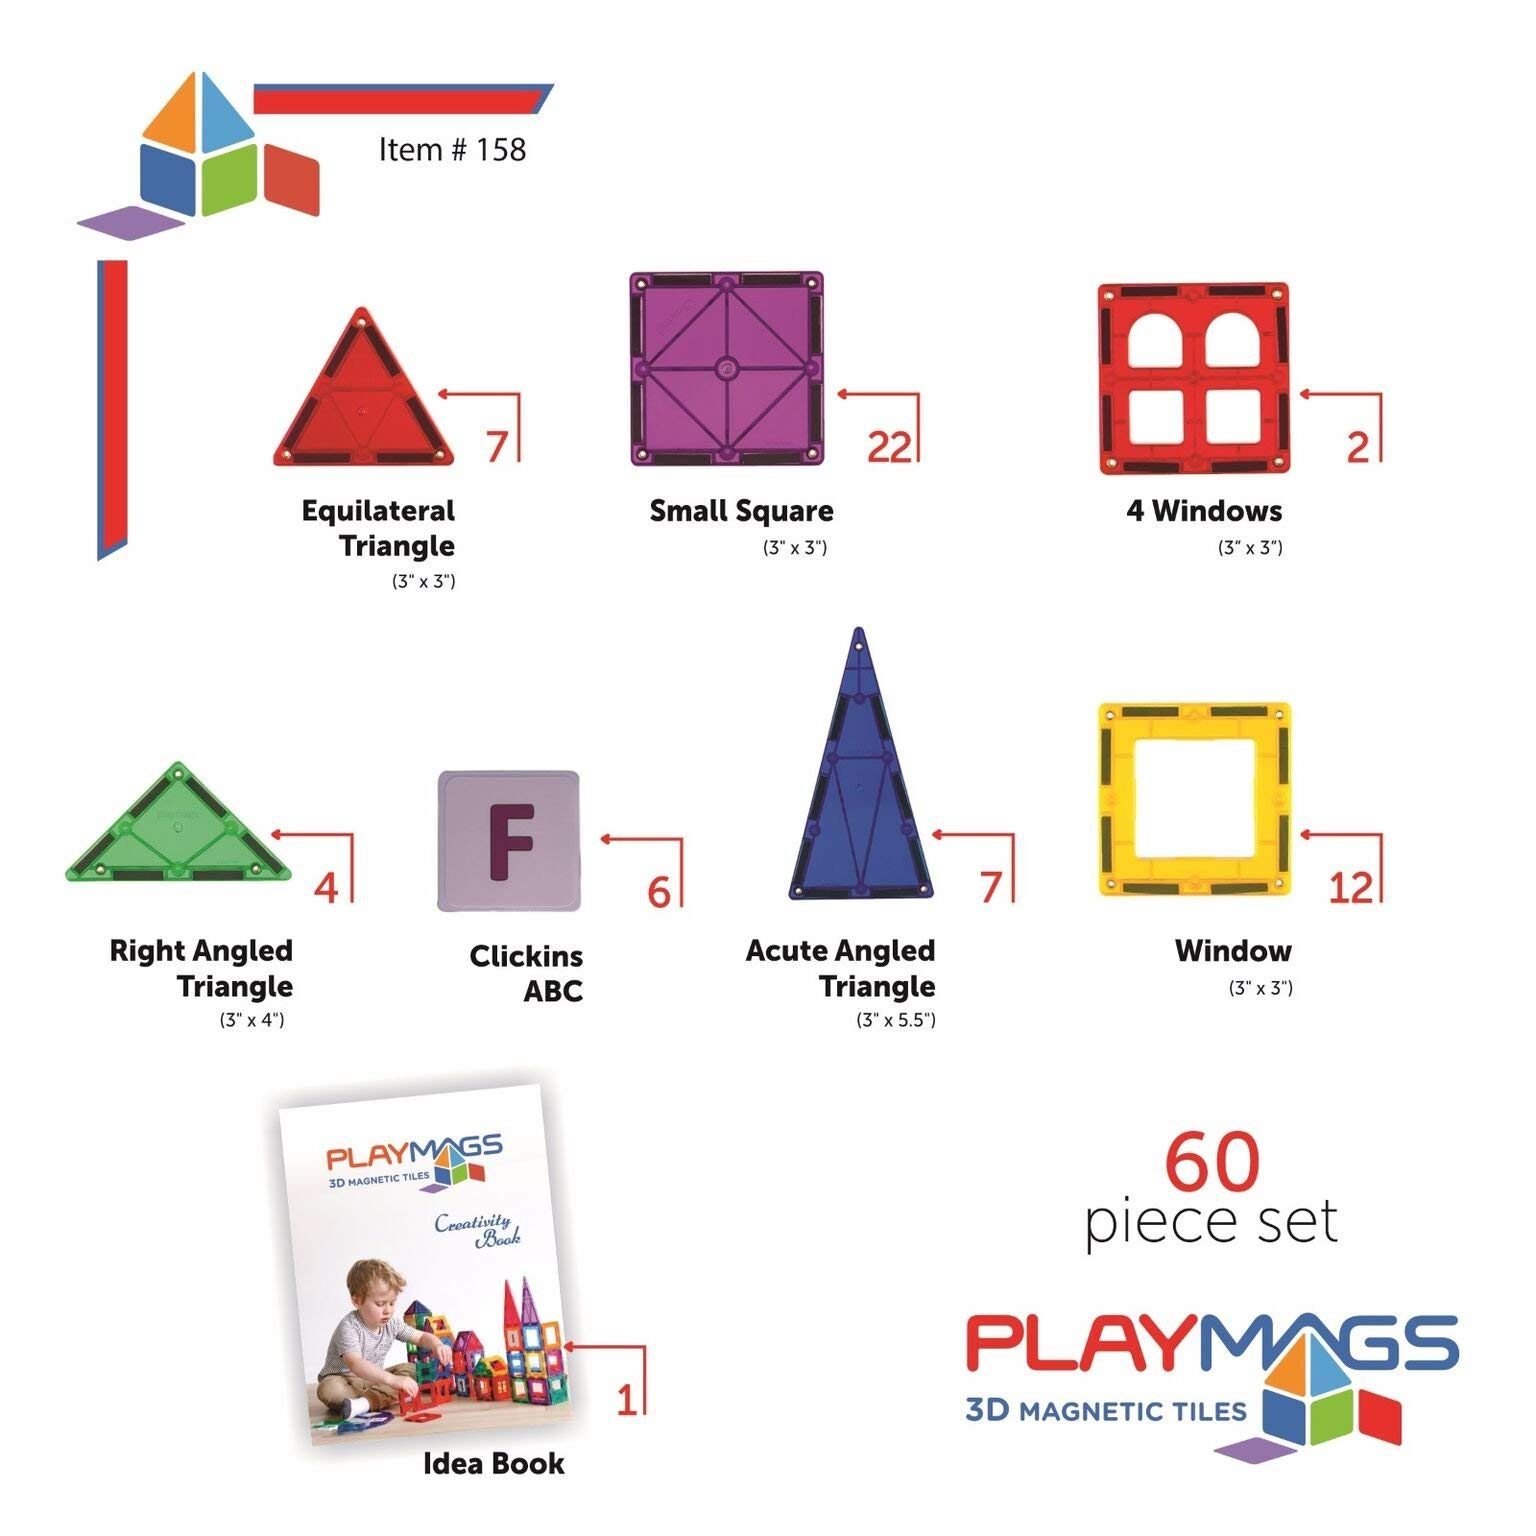 Playmags Clear Colors Magnetic Tiles Building Set 60 Piece Starter Set by Playmags (Image #4)